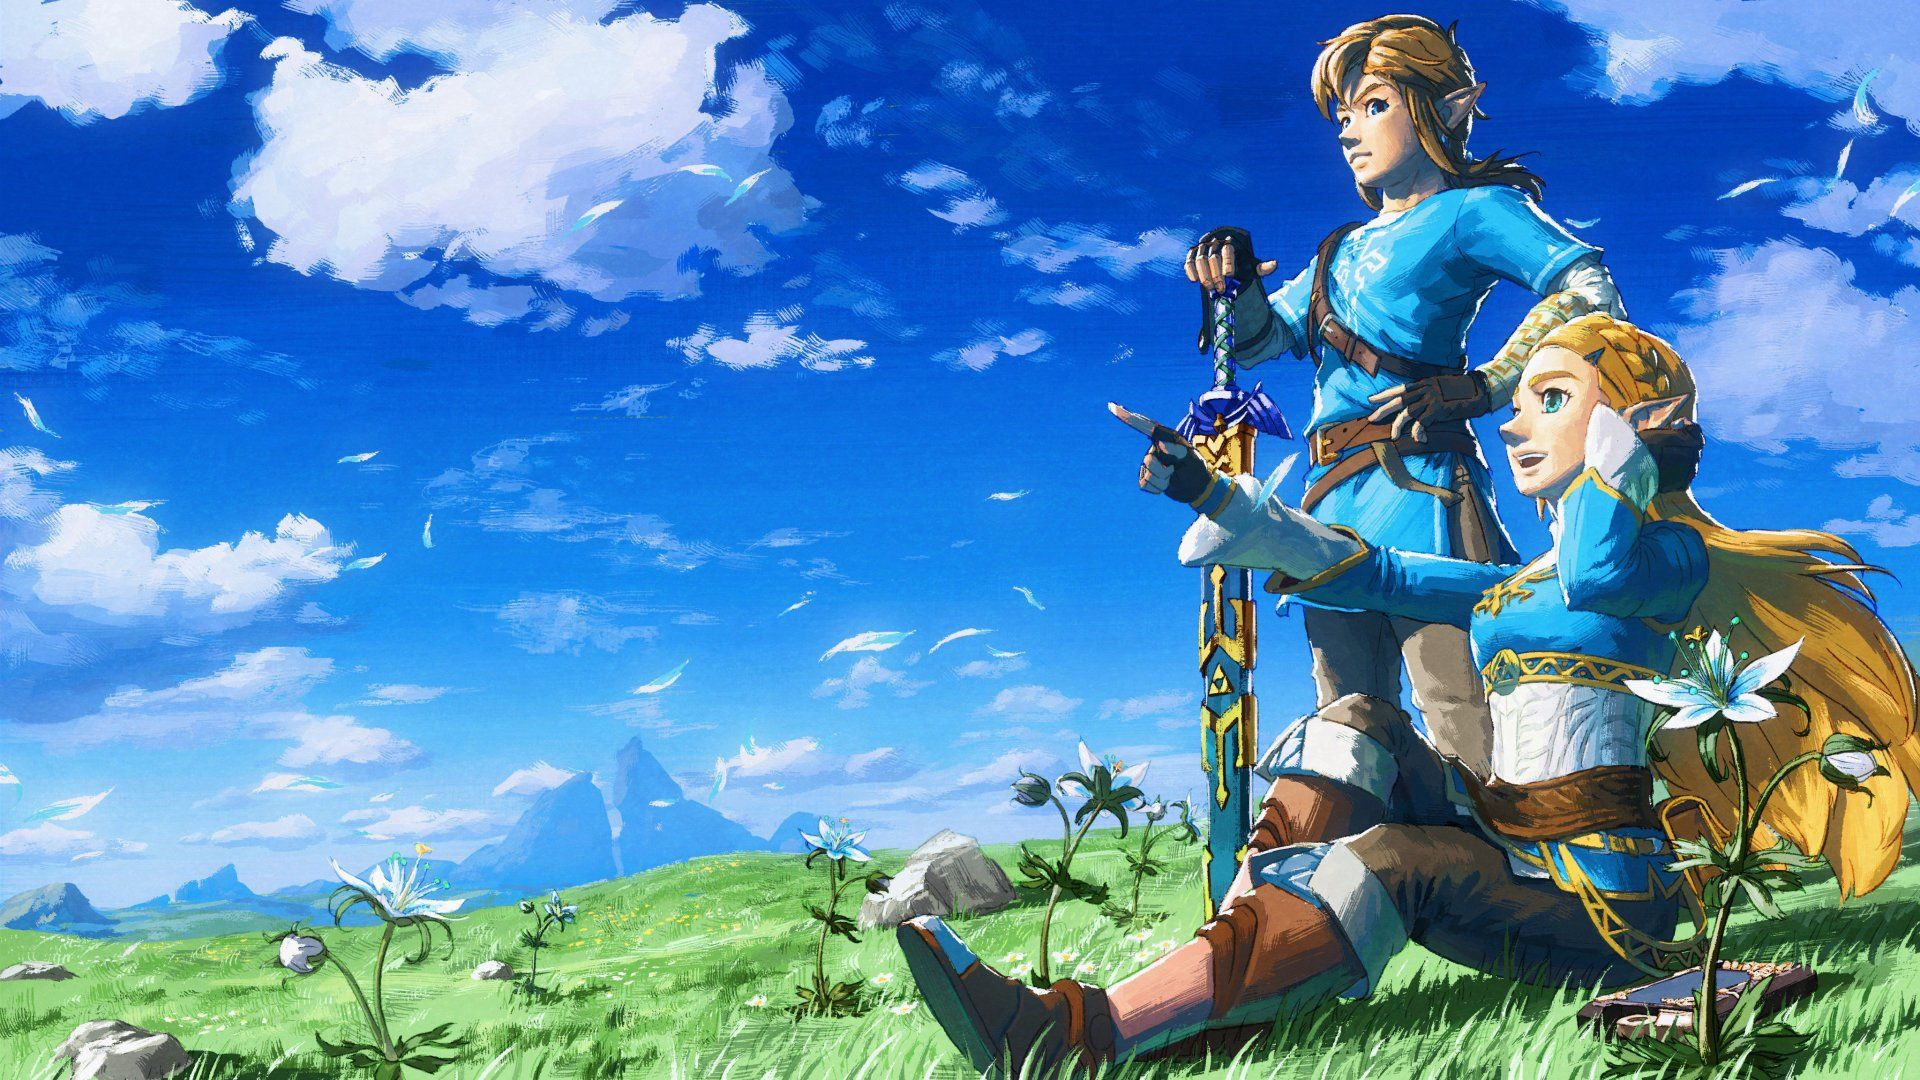 Video Game The Legend Of Zelda Breath Of The Wild Zelda Link Wallpaper Legend Of Zelda Legend Of Zelda Breath Breath Of The Wild